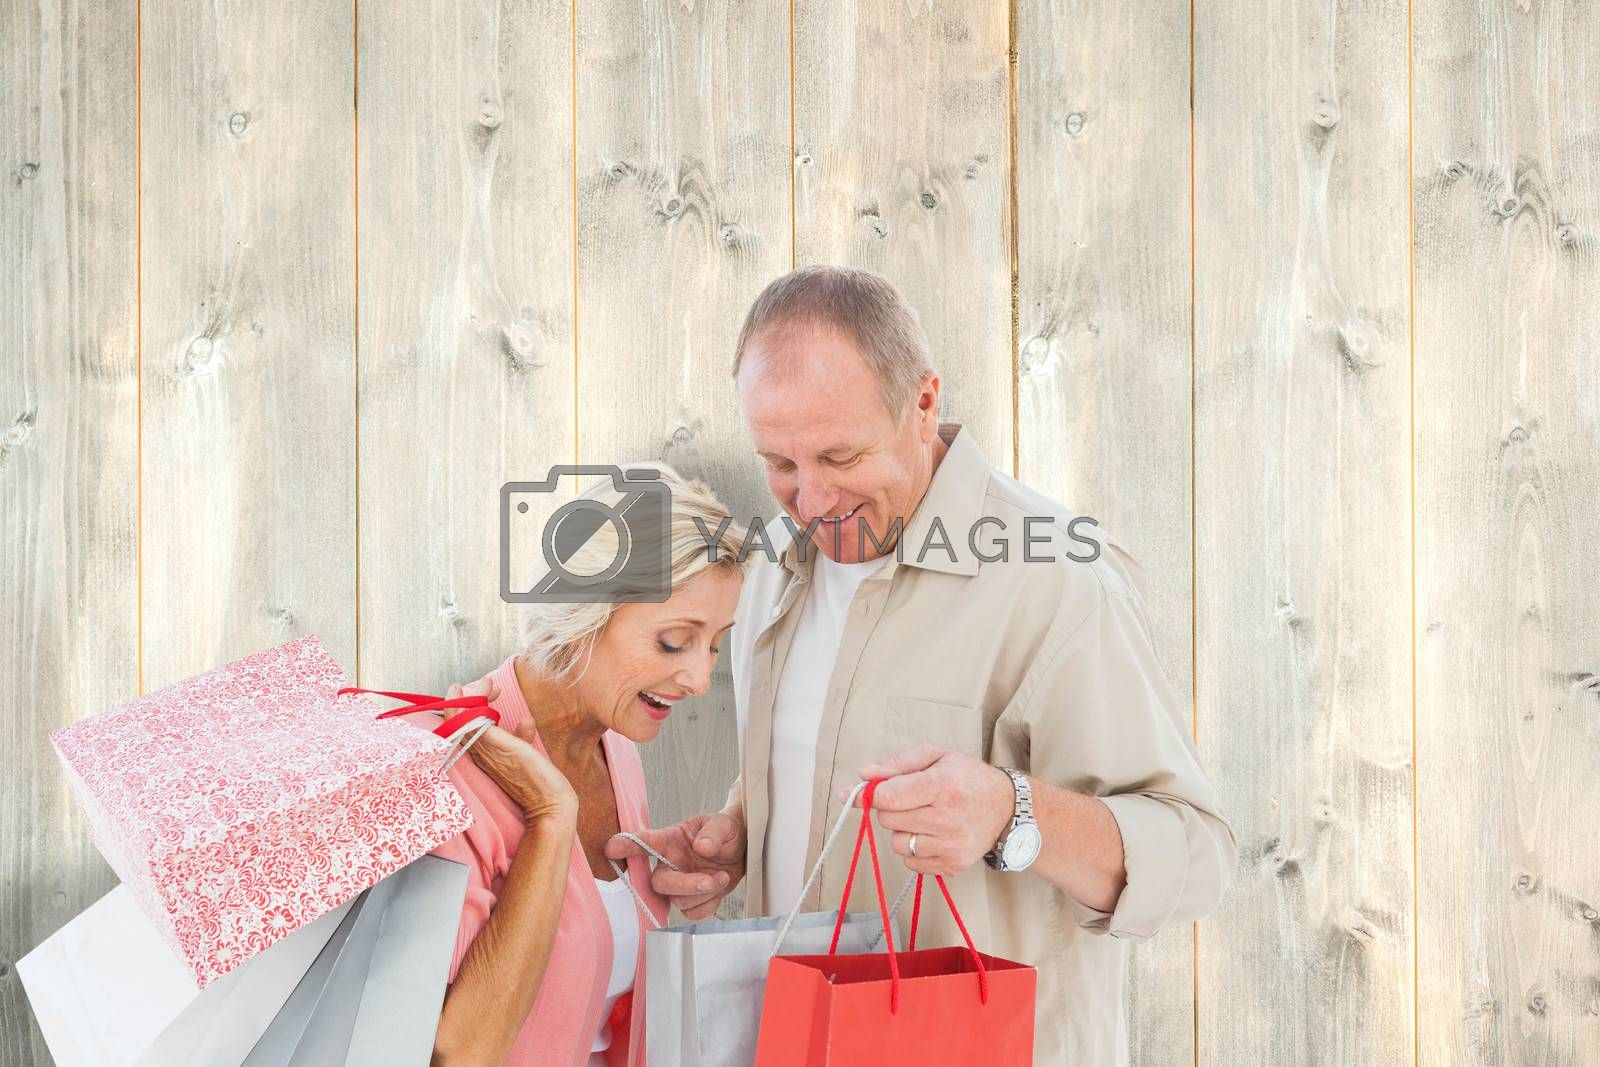 Couple with shopping bags against pale wooden planks